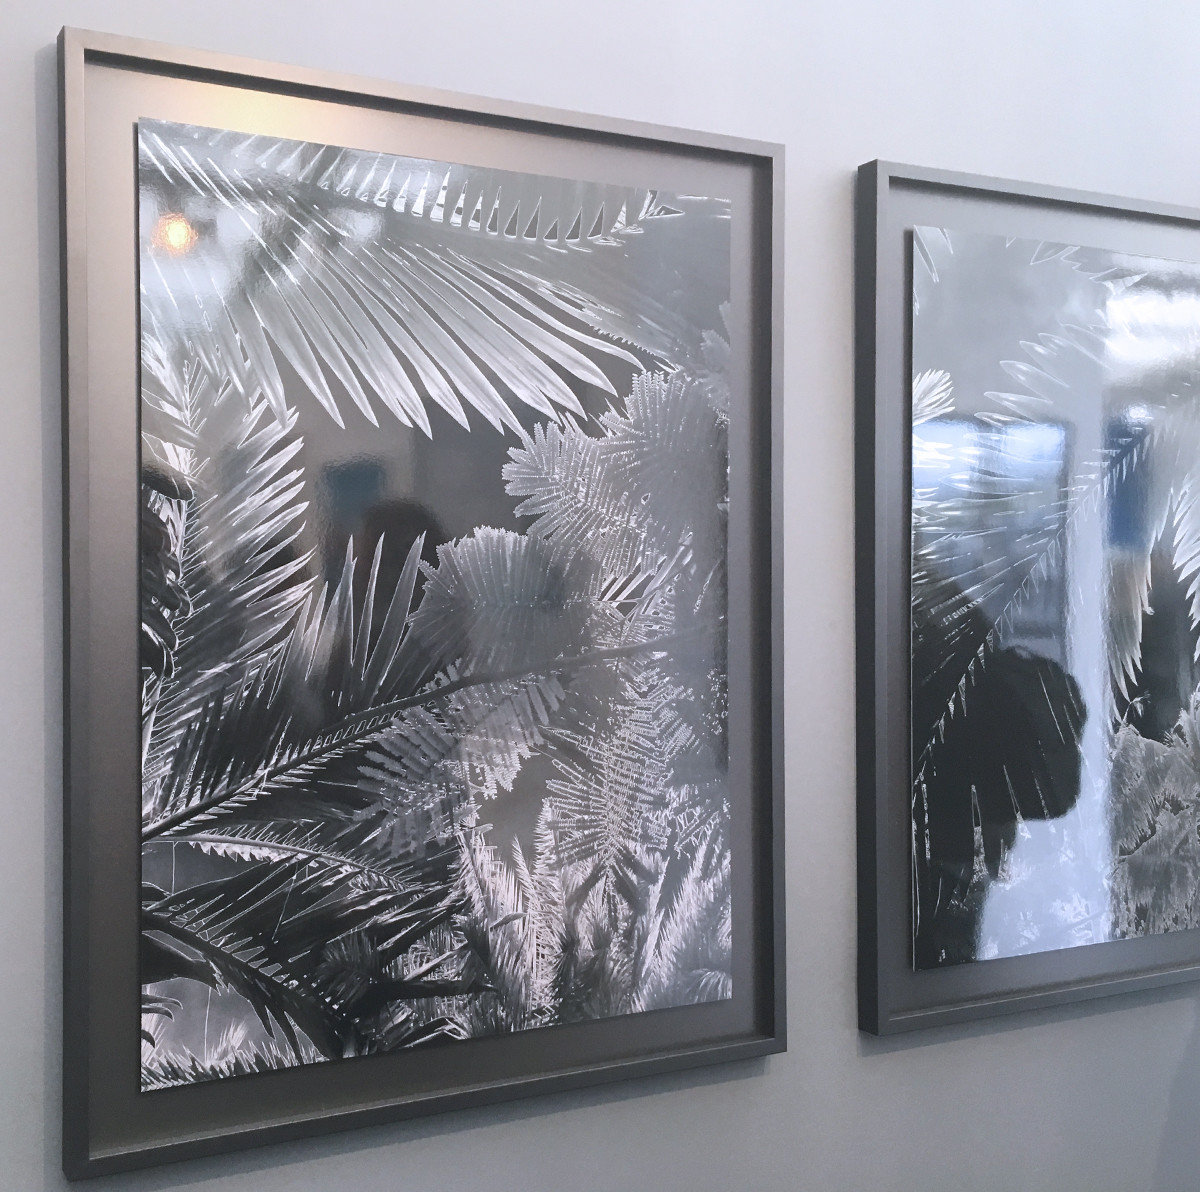 With Photo London 2018 just around the corner, we look at the photography and artists to visit at these years fair and satellite events. THE WORK 'Black Palms' by Karine Laval One of the highlights for us last year was working with Crane Kalman Gallery again and producing these bespoke grey floating box-framesfor Karine Laval's […]